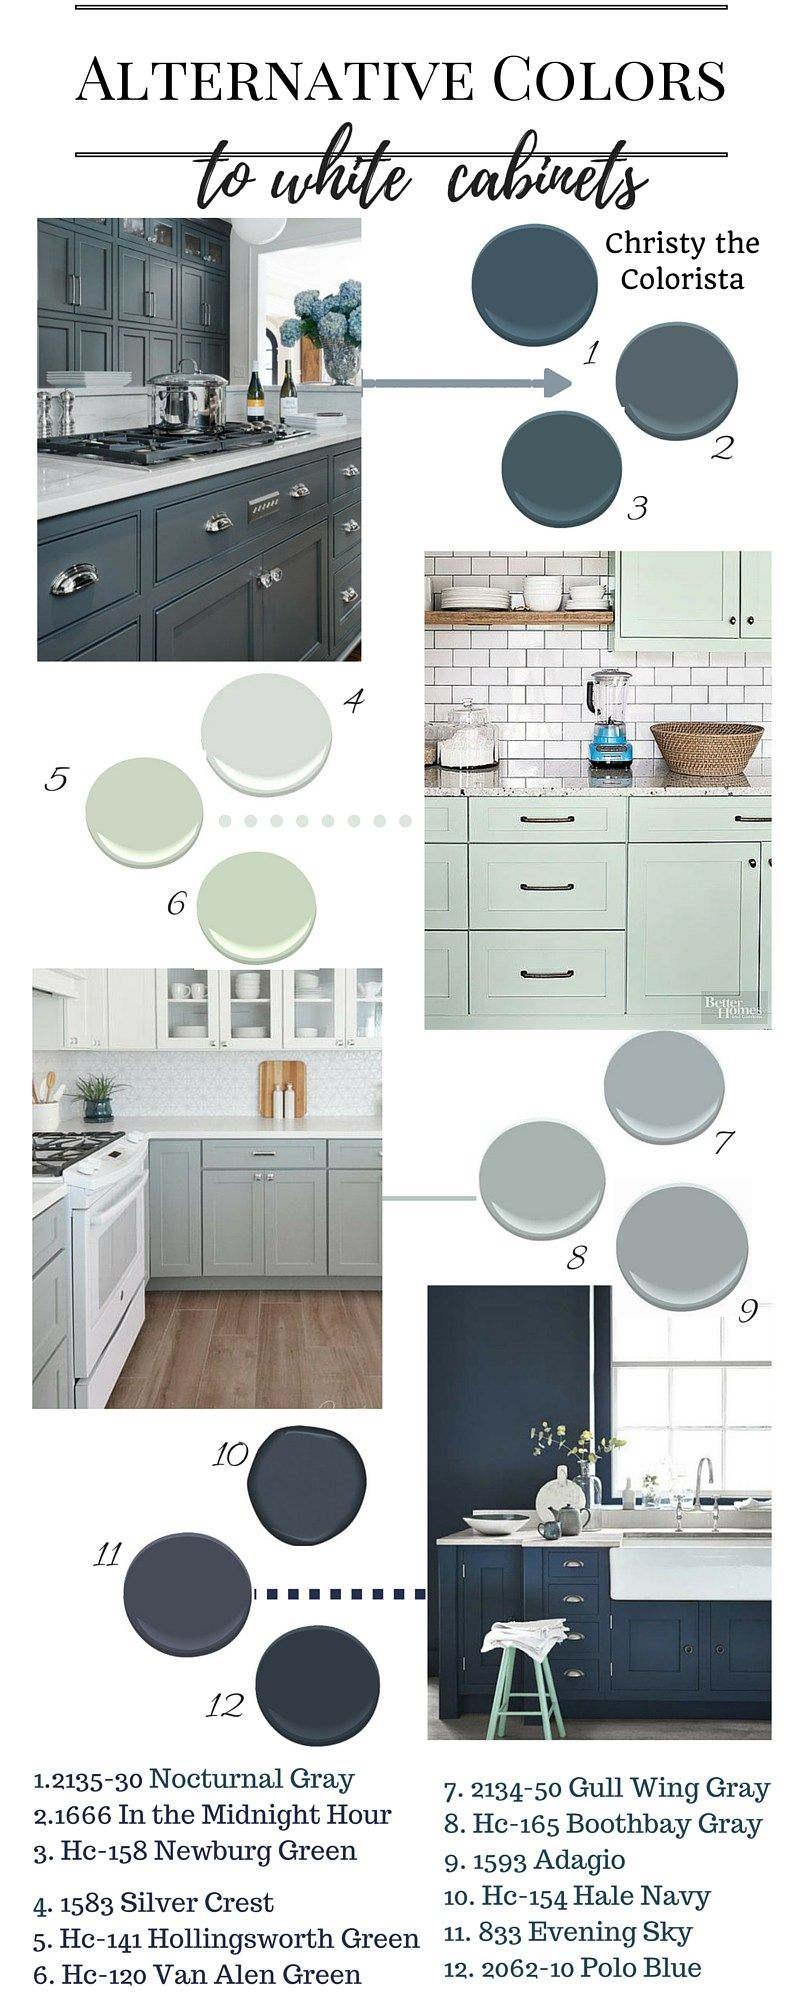 Great Benjamin Moore Paint Colors For Cabinets Polo Blue Newberg Green Silver Crest Hollingsworth Green Boothbay G Home Home Decor Kitchen Cabinet Colors